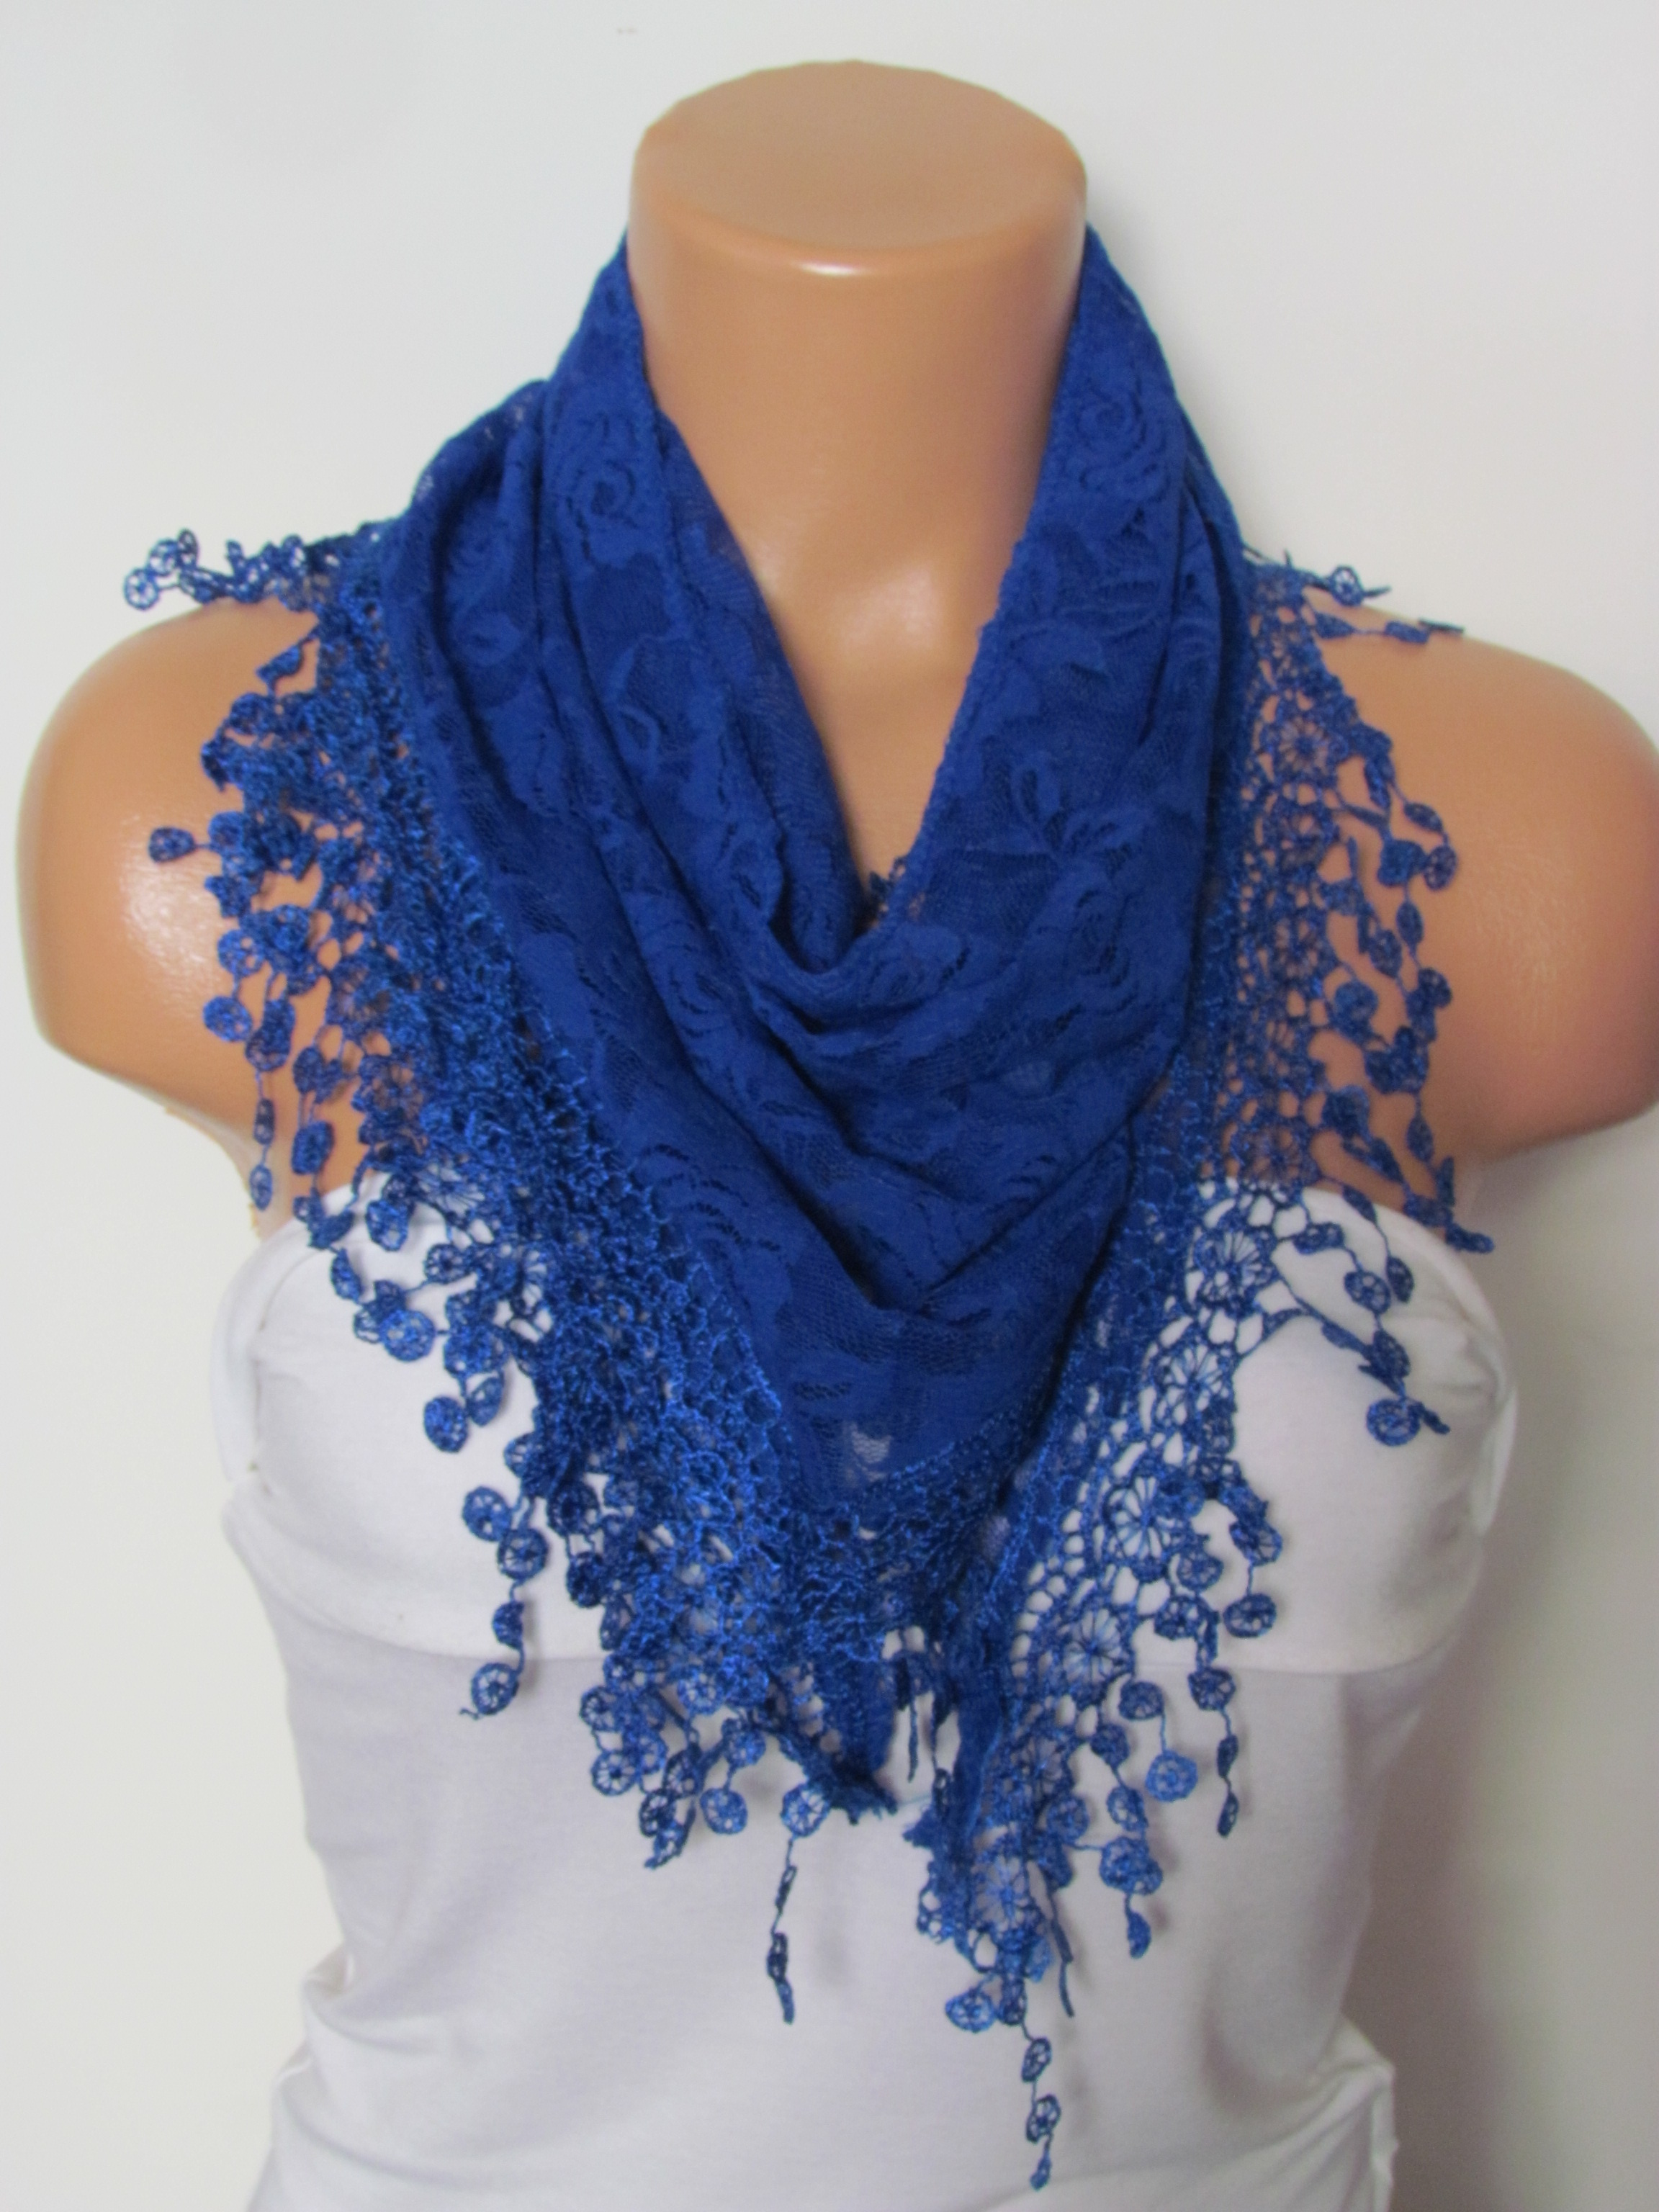 c501eecad51db Royal Blue Long Scarf With Fringe-Winter Fashion Scarf-Headband-Necklace- Infinity  Scarf- Winter Acc on Luulla